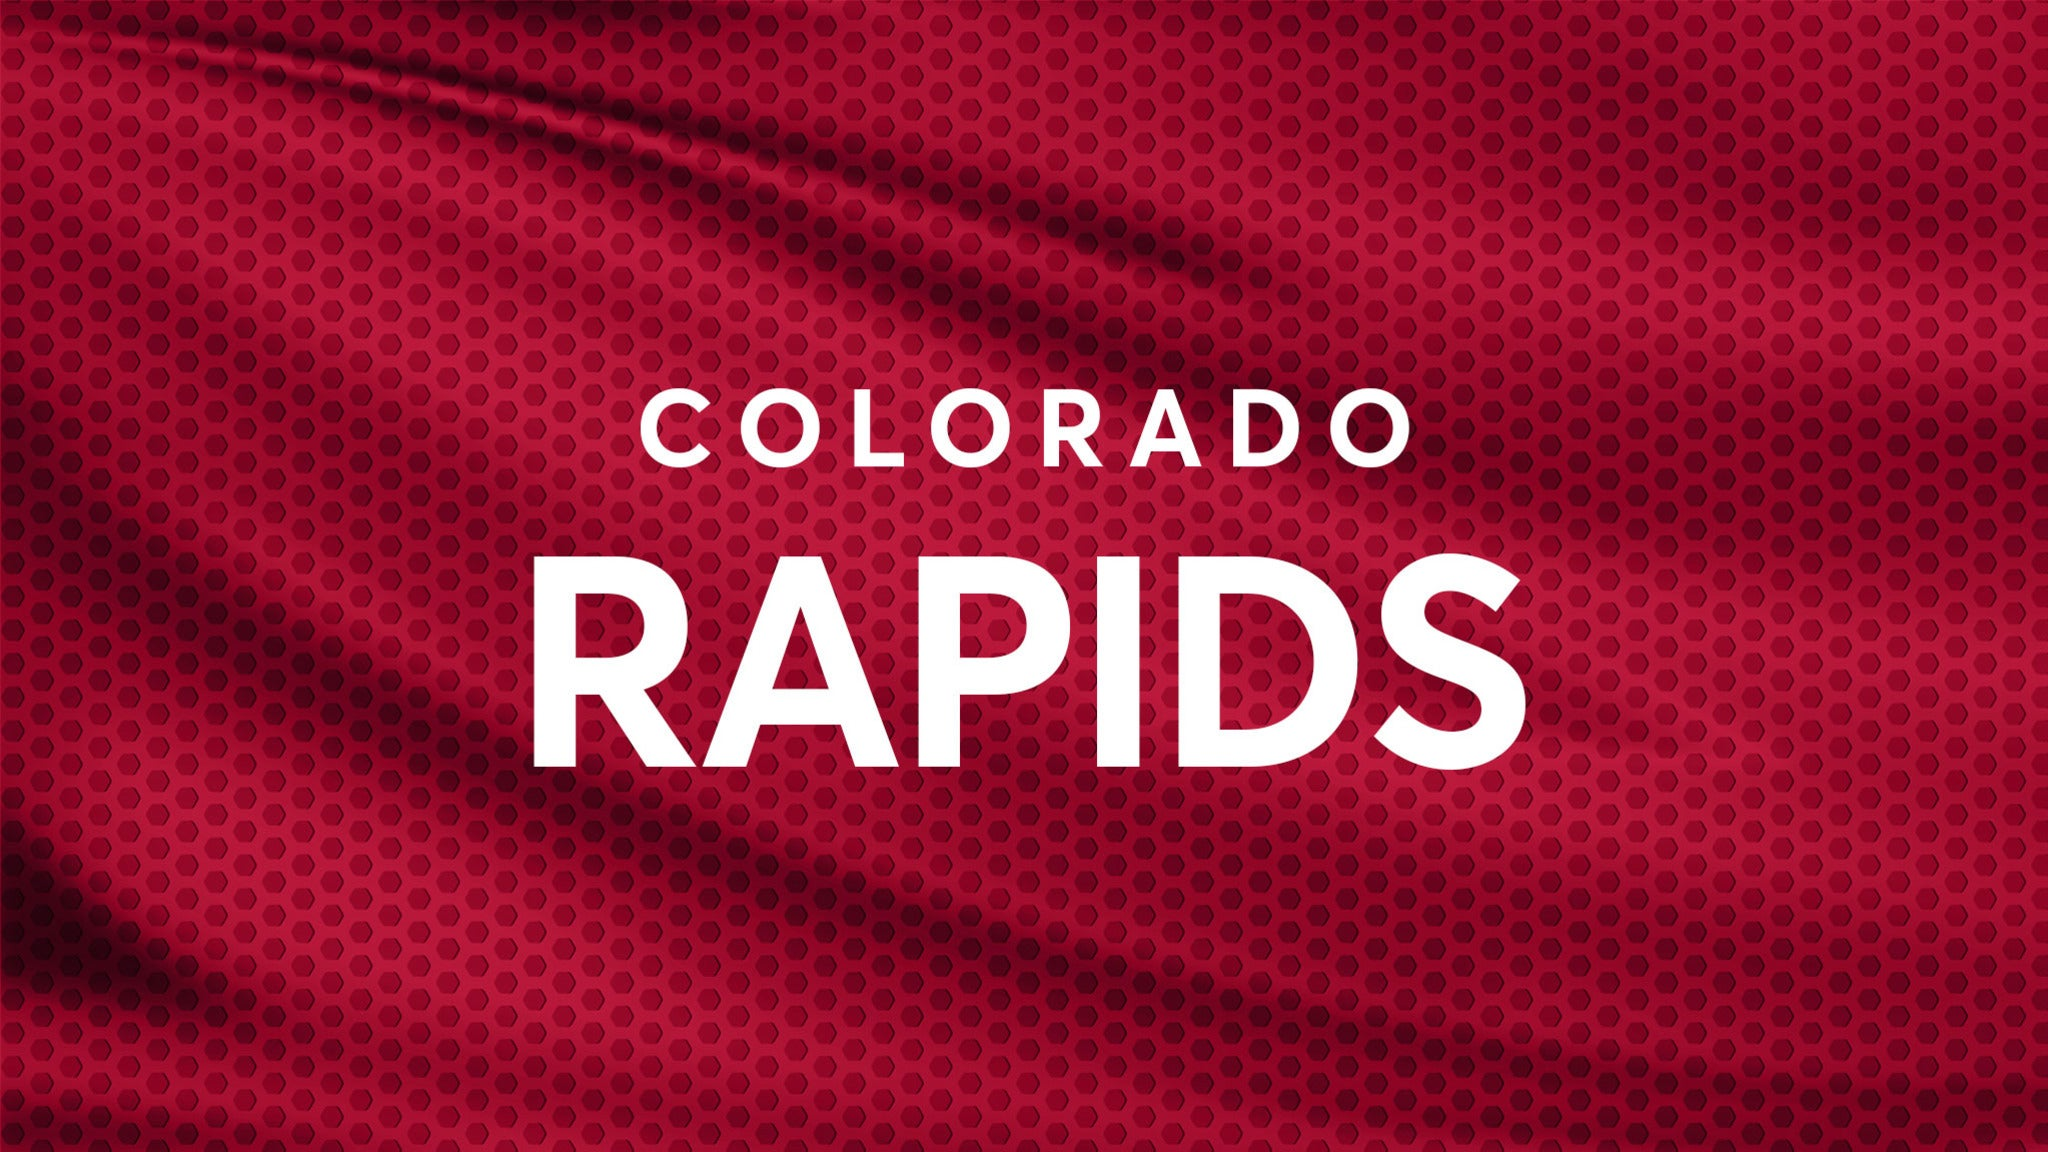 Colorado Rapids vs. New York Red Bulls - Commerce City, CO 80022